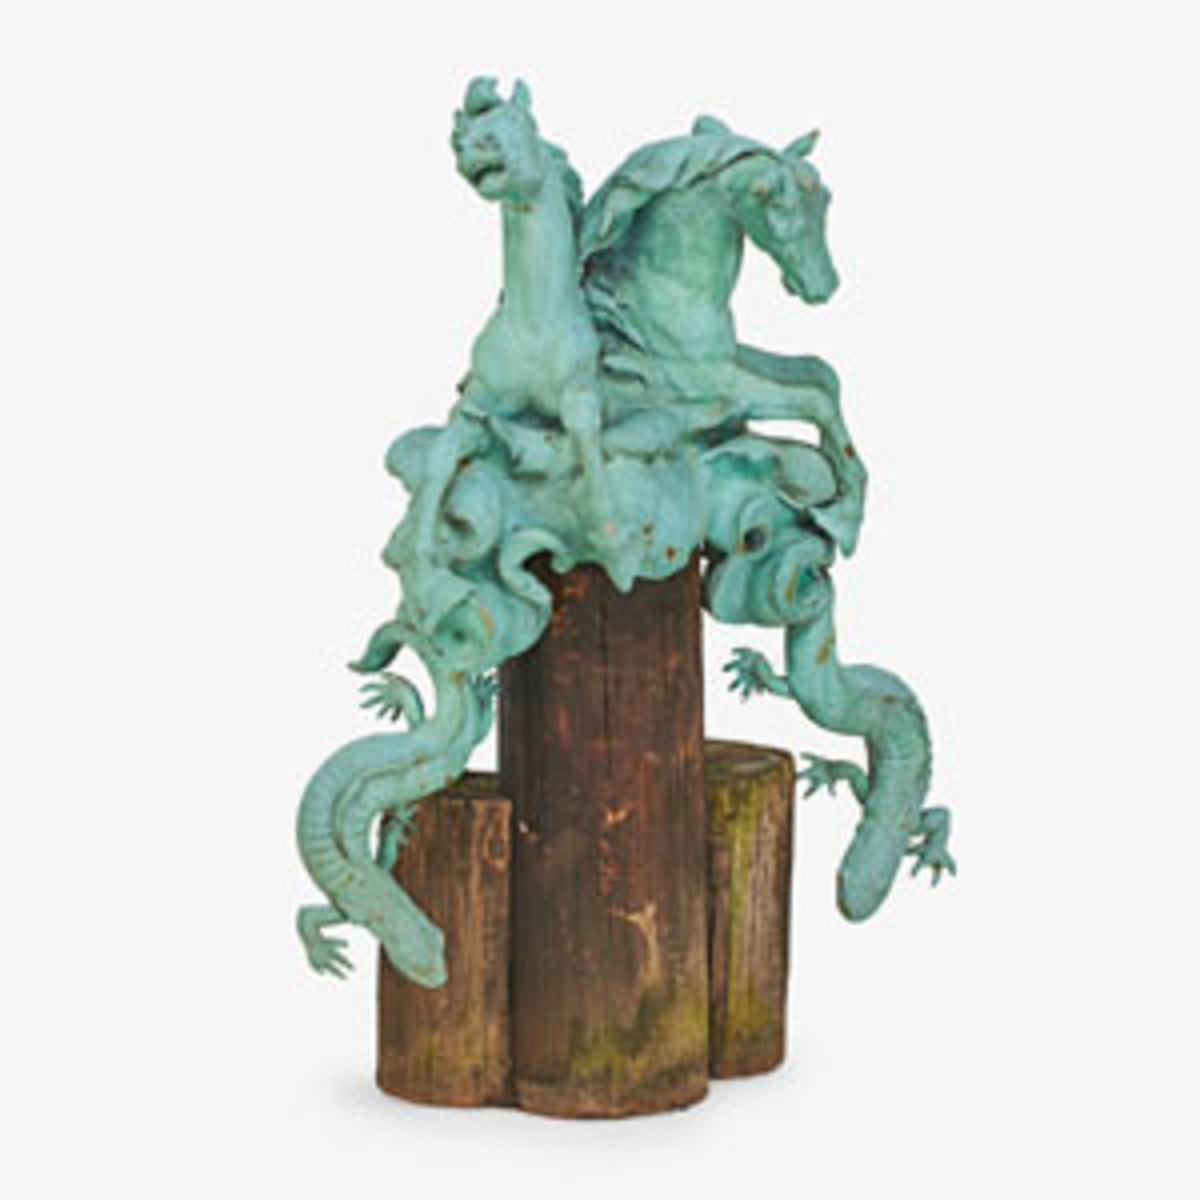 William Couper Top of Drinking Fountain for Horses;estimate: $10,000-$15,000.